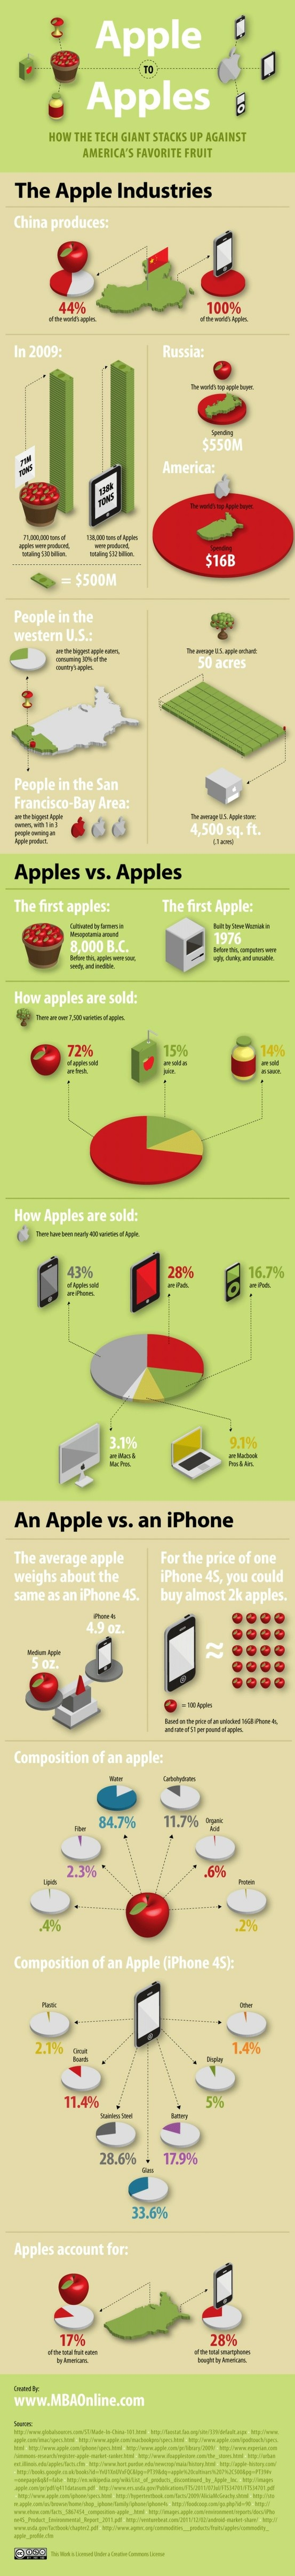 Apples to Apple: The Goofiest Infographic You'll Ever See?